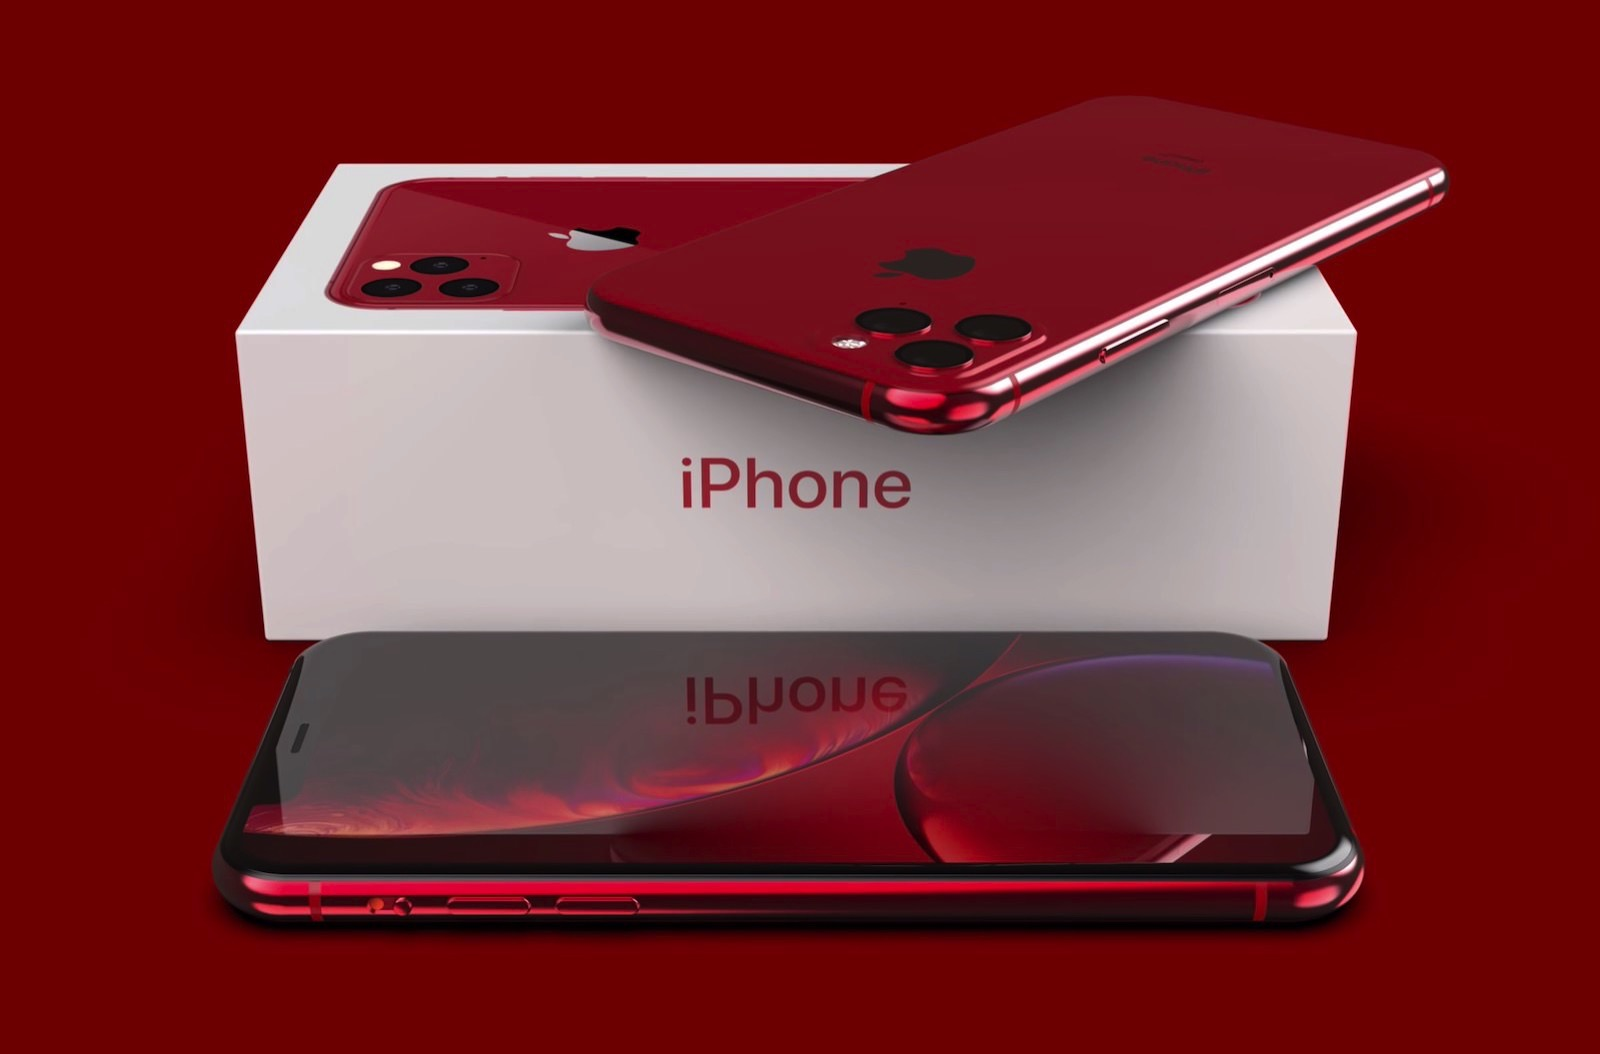 Iphone pro 2019 concept image